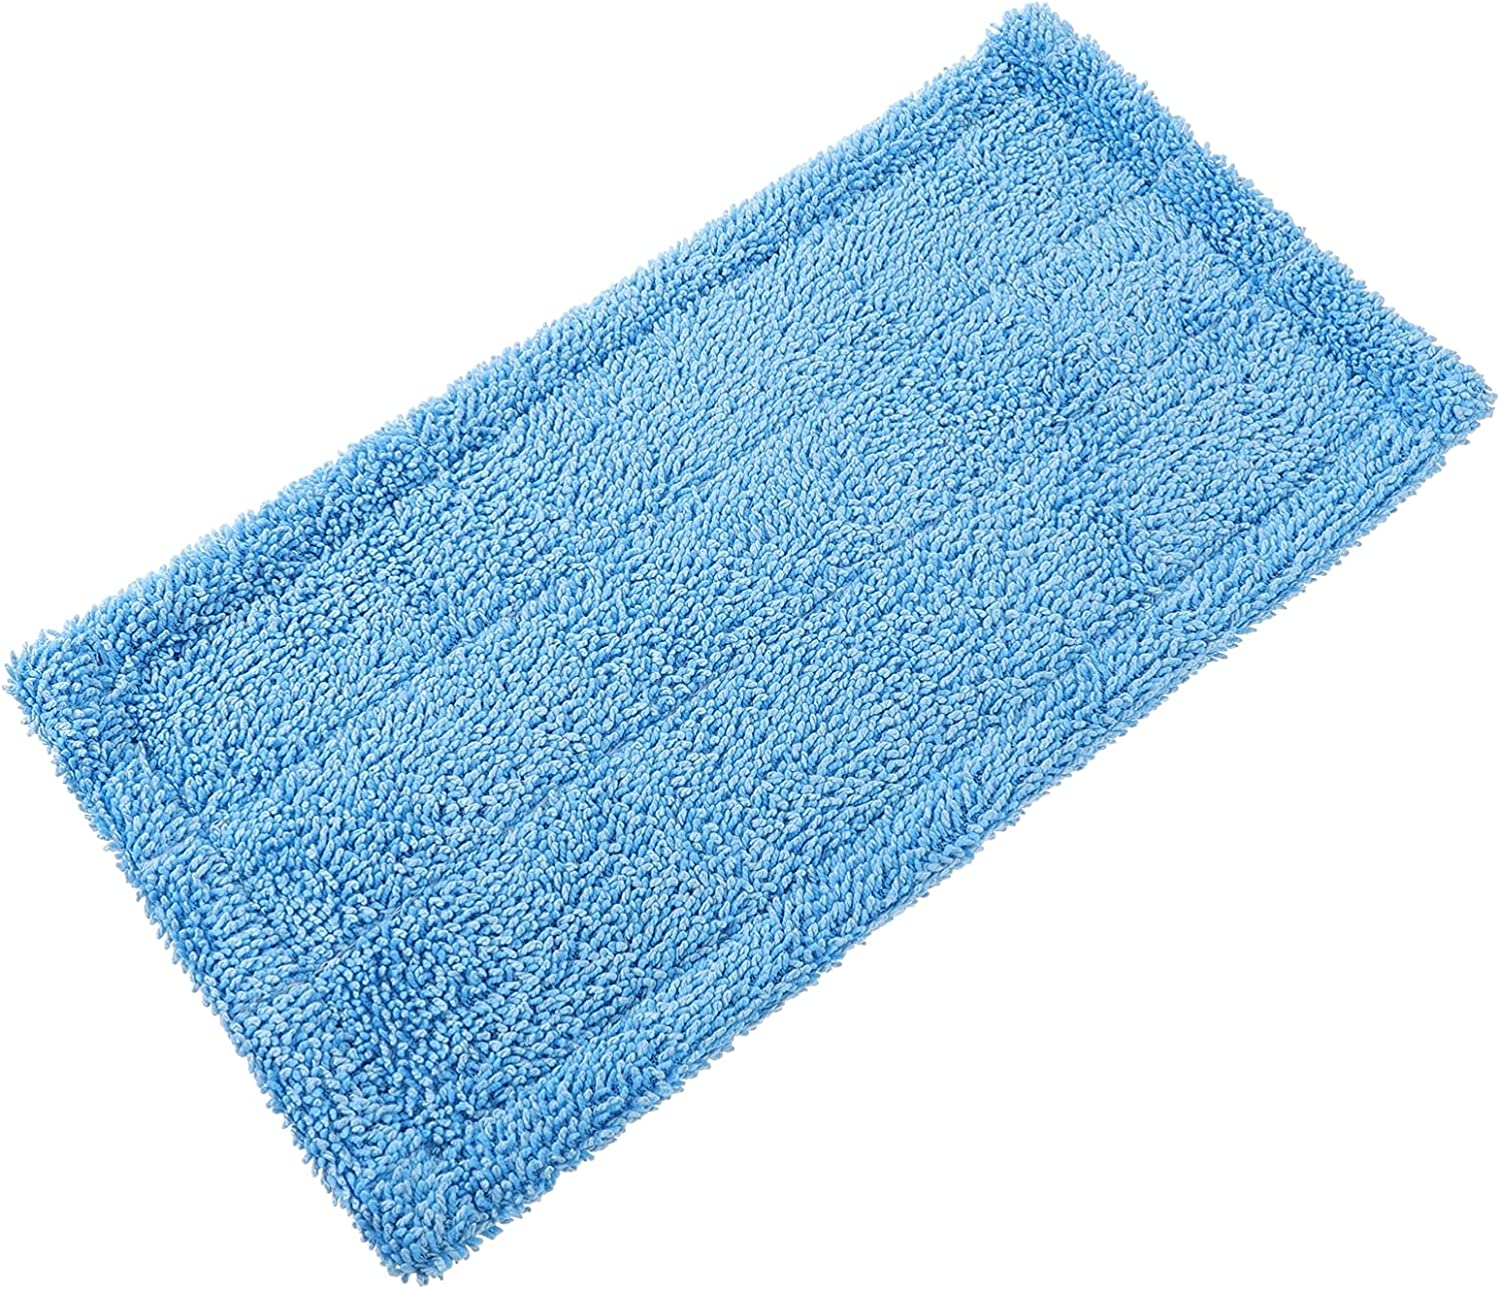 VORCOOL Mop Pad Long Beach Mall low-pricing Replacement Heads Mops Pads Cleaning Microfiber